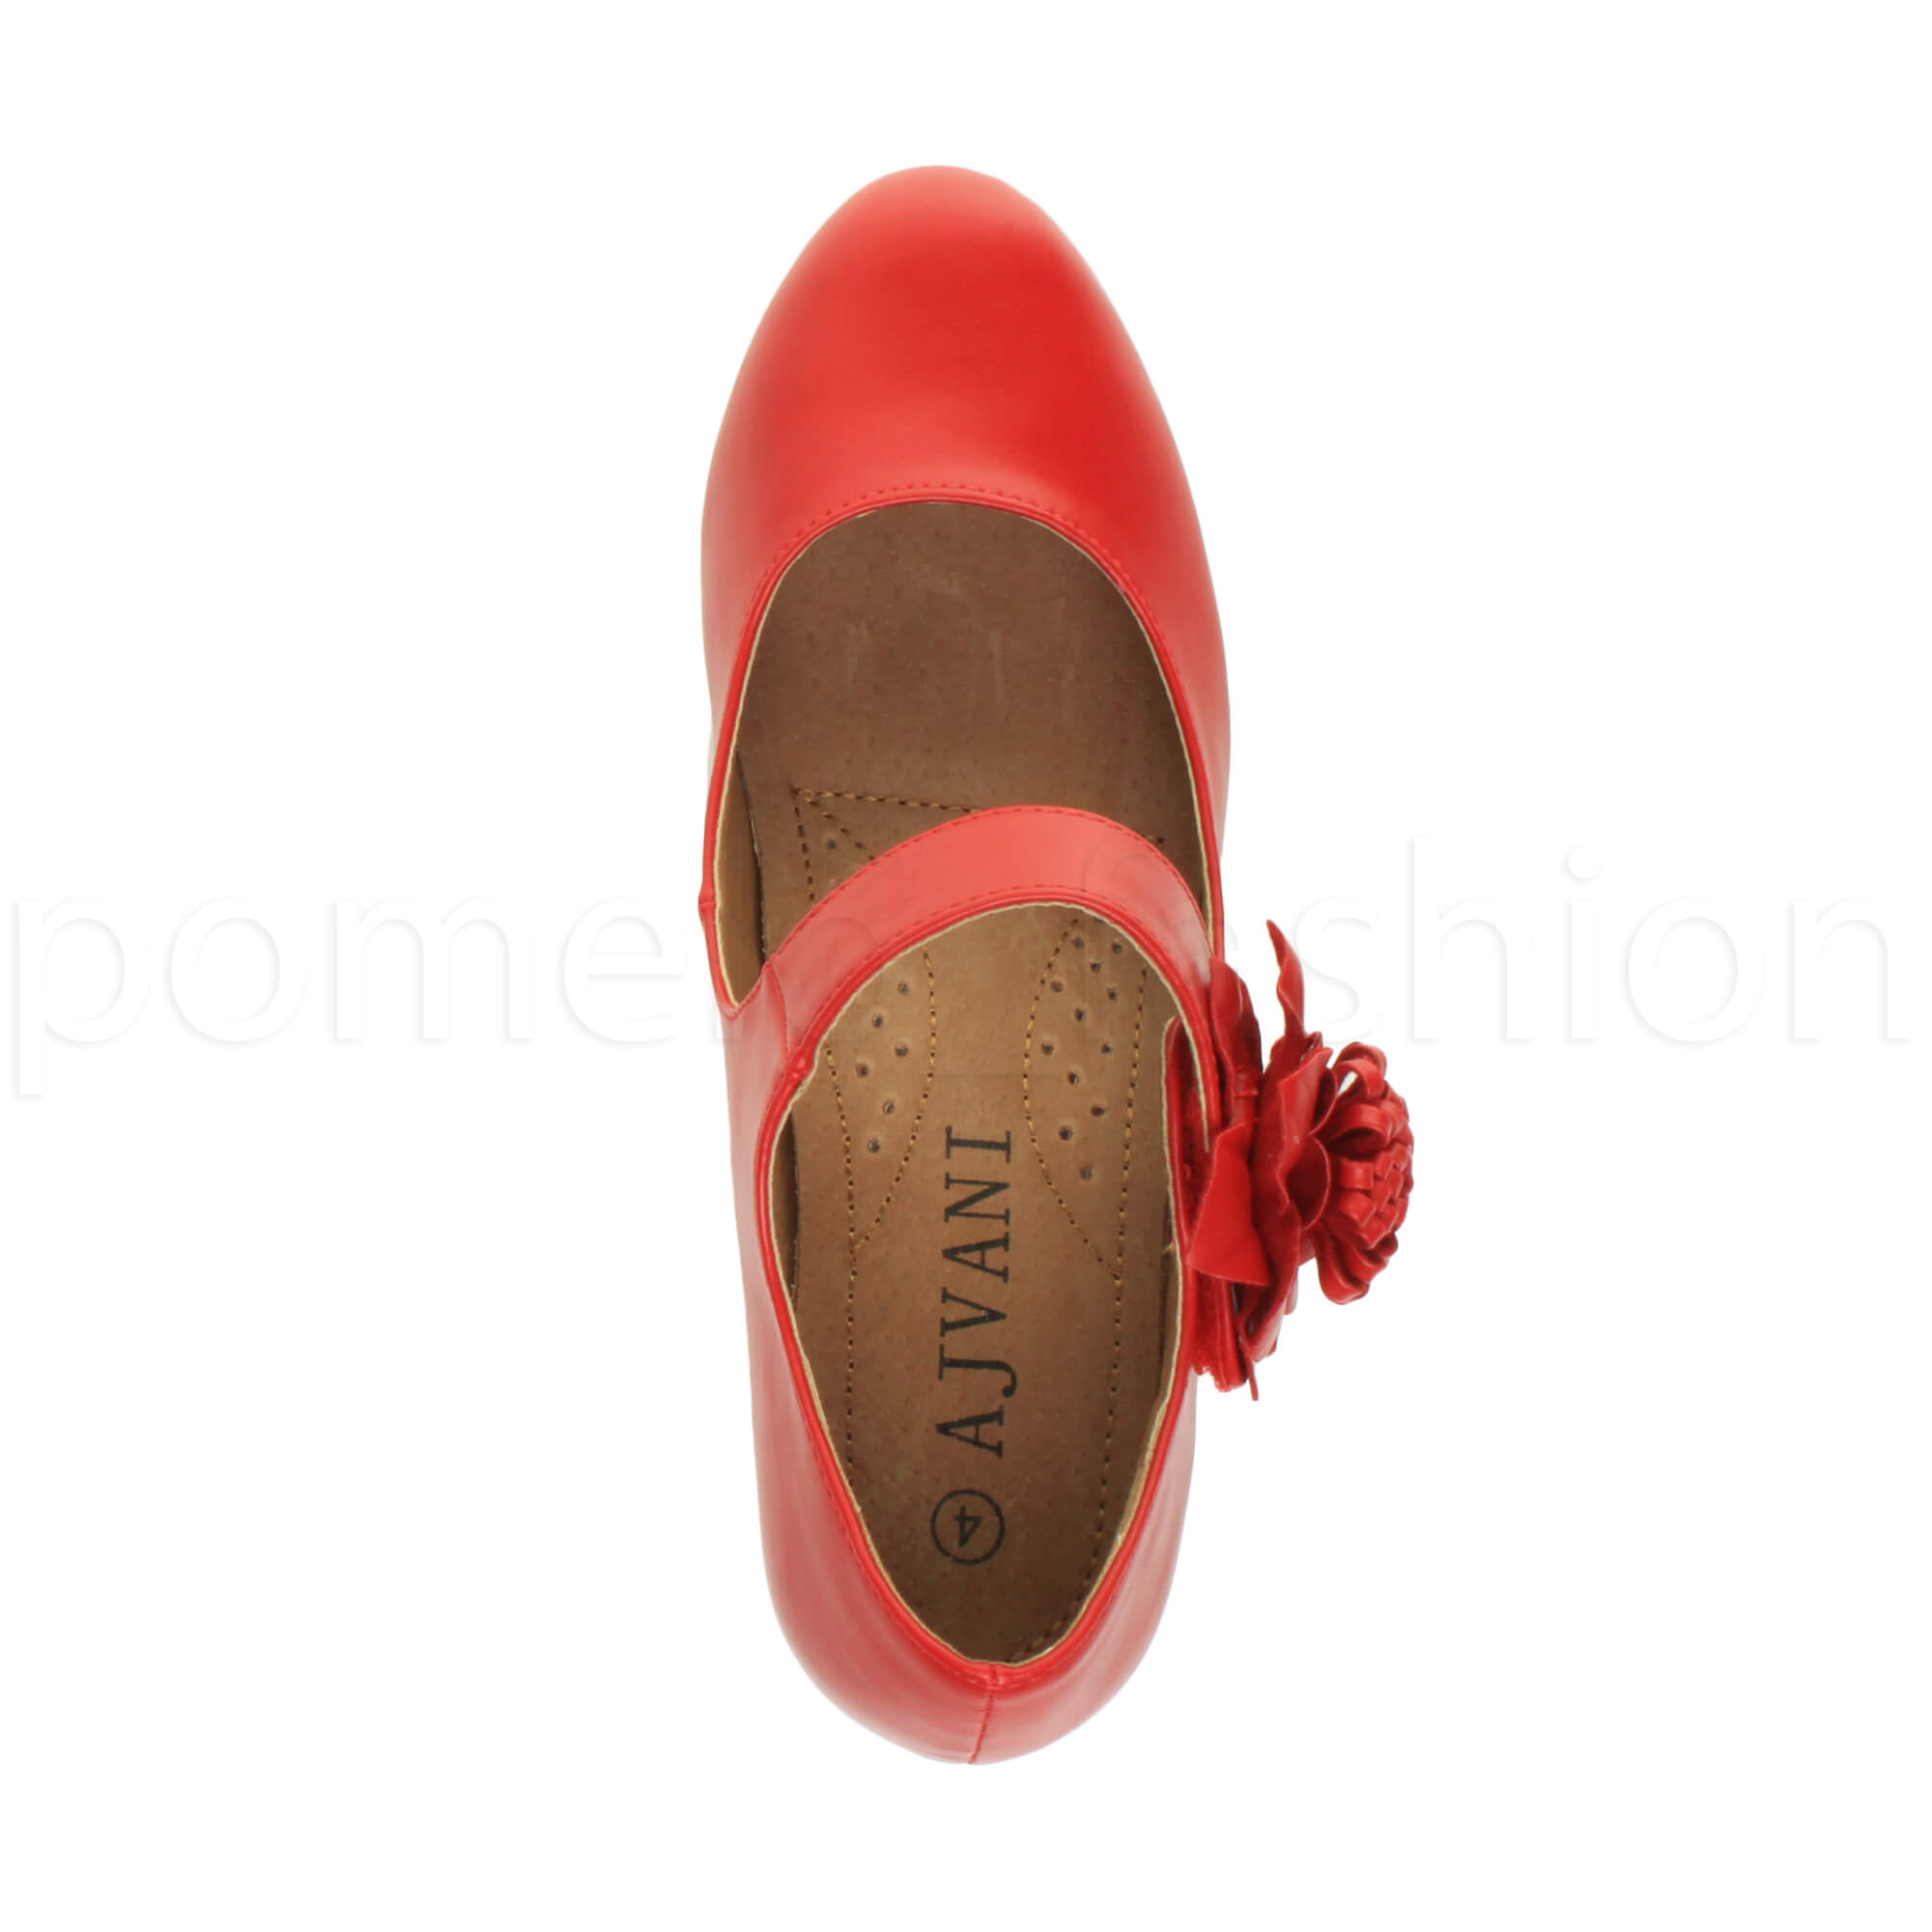 WOMENS LADIES COMFORT MID HEEL MARY JANE PADDED CUSHIONED 50s 60s COURT SHOES